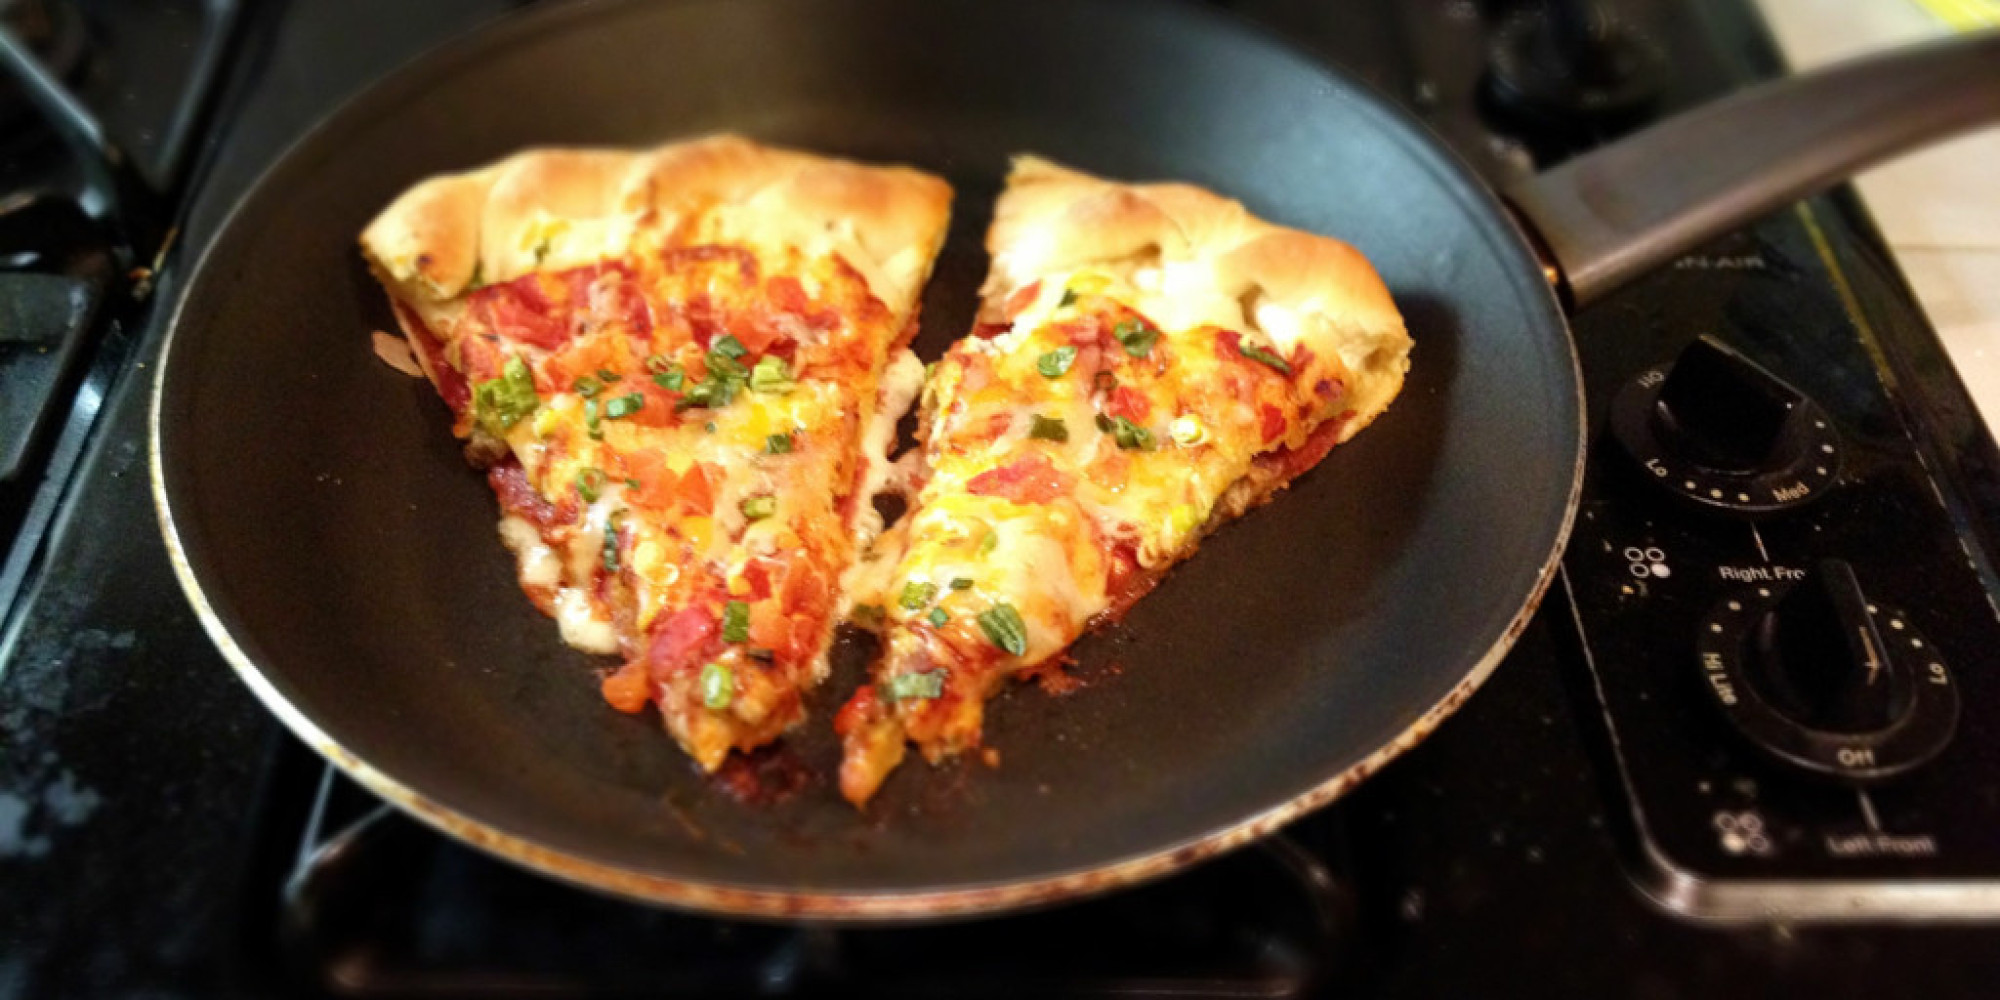 All The Best Ways To Reheat Pizza According To The Collective